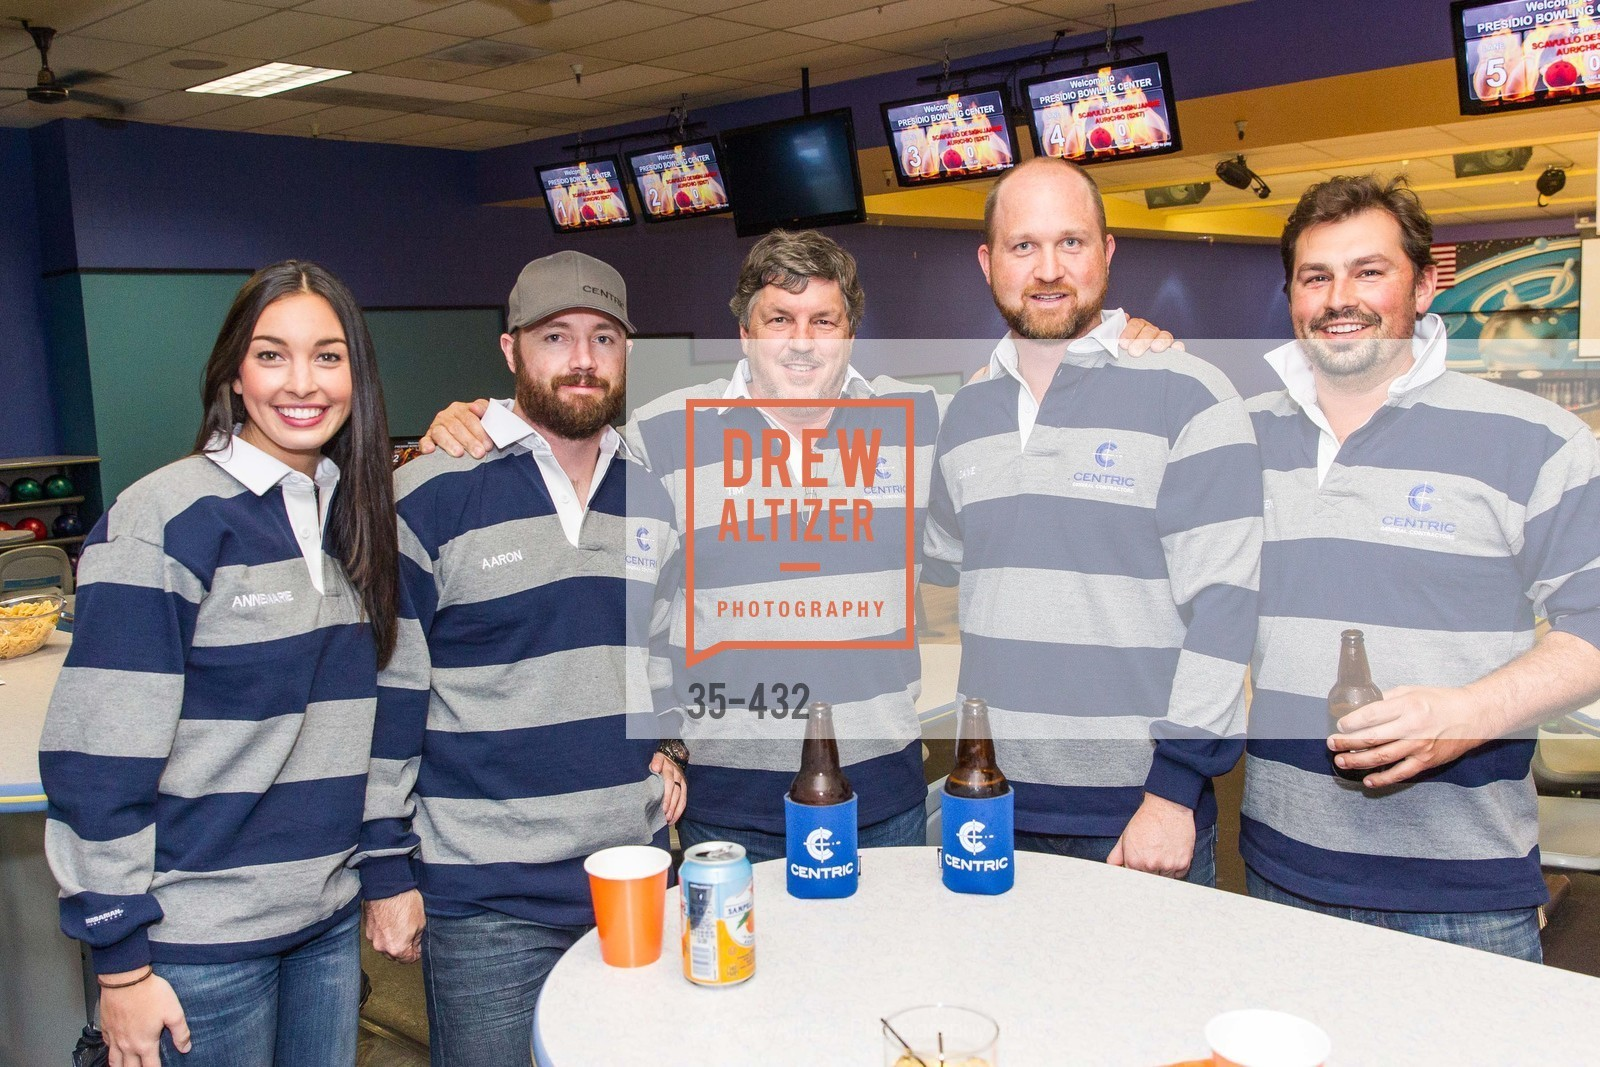 Annemarie Gresh, Aaron Botenhagen, Tim McDonald, Dave Riordan, Branden McDonald, ScavulloDesign Centric Builders Bowling Party, Presidio Bowl. 93 Moraga Ave, October 29th, 2015,Drew Altizer, Drew Altizer Photography, full-service agency, private events, San Francisco photographer, photographer california